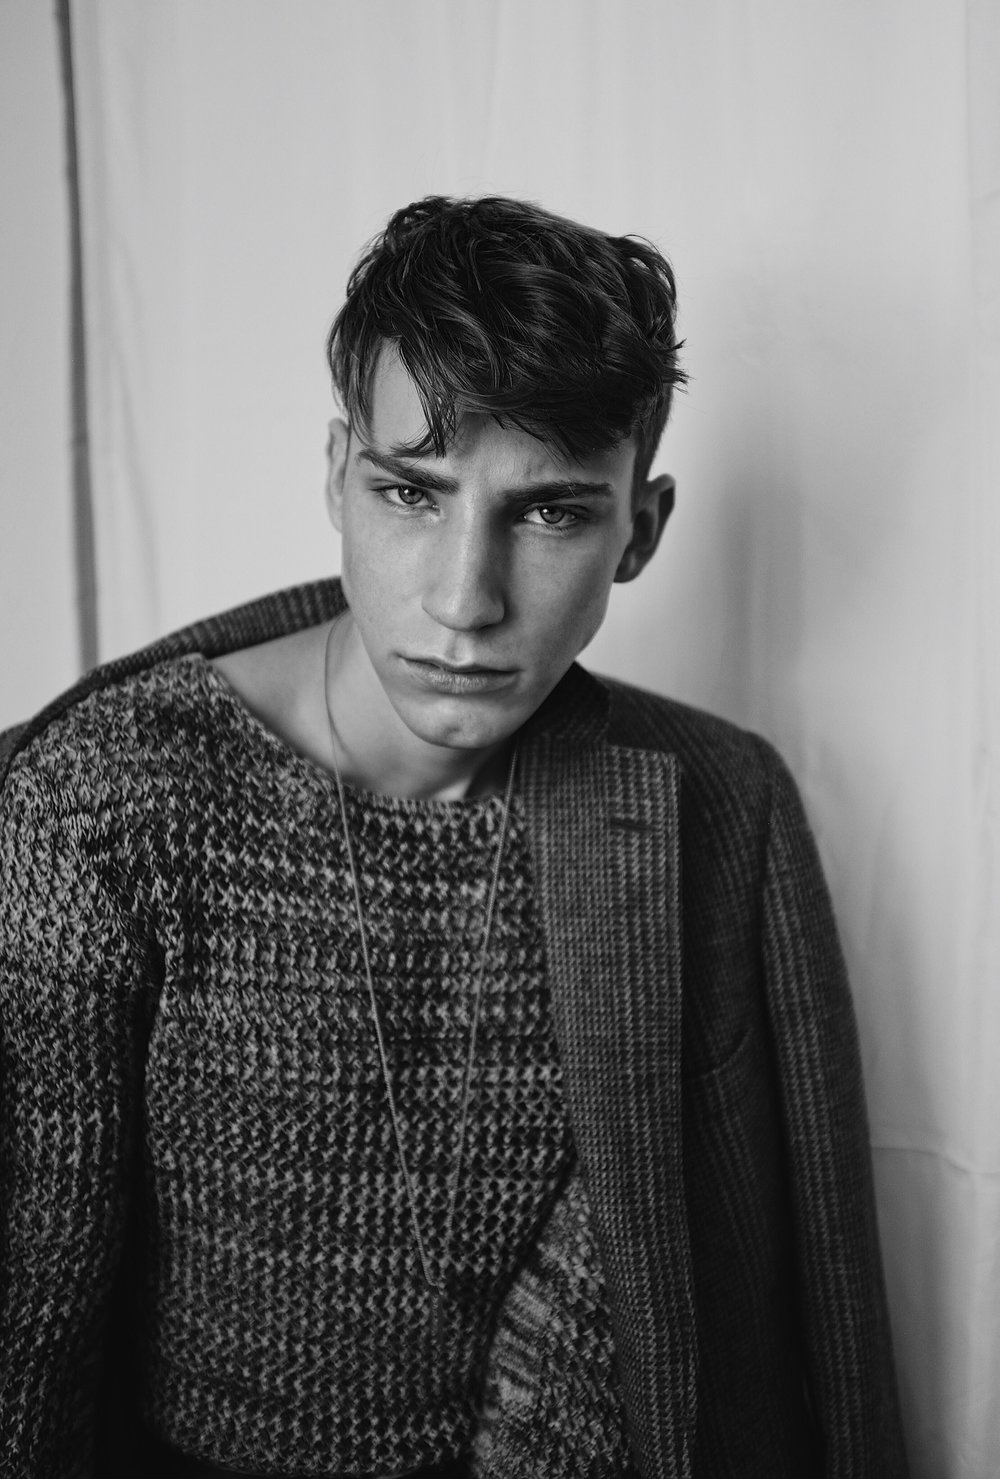 Maverick McConnell (photographer), Mark Young (model)